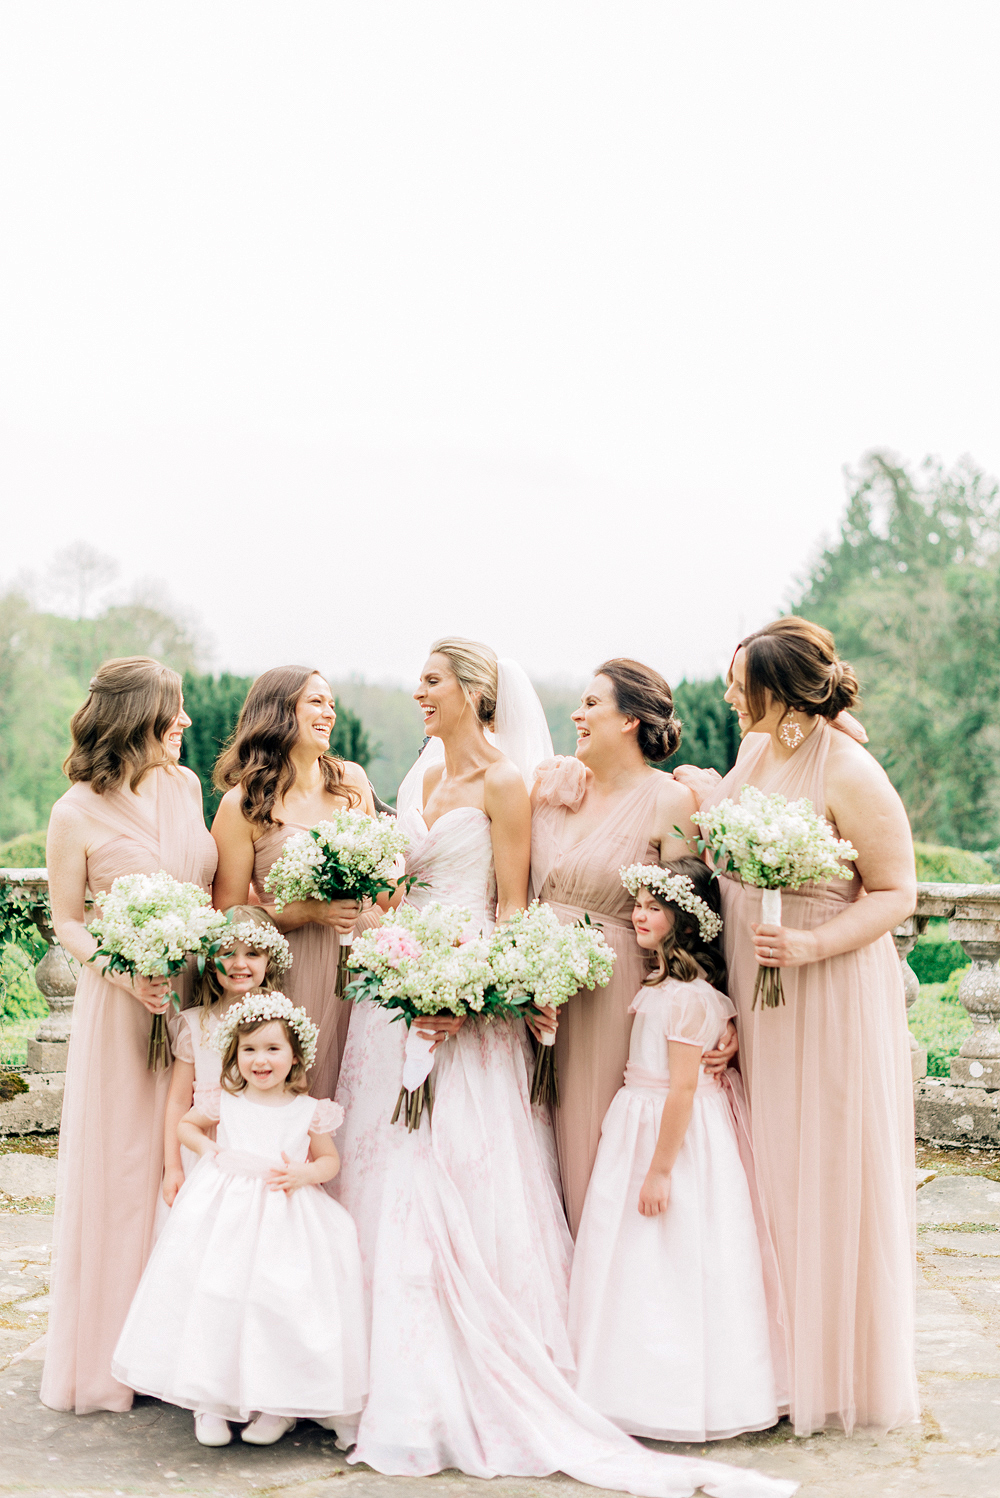 blathnaid daire wedding bride bridesmaids flower girls